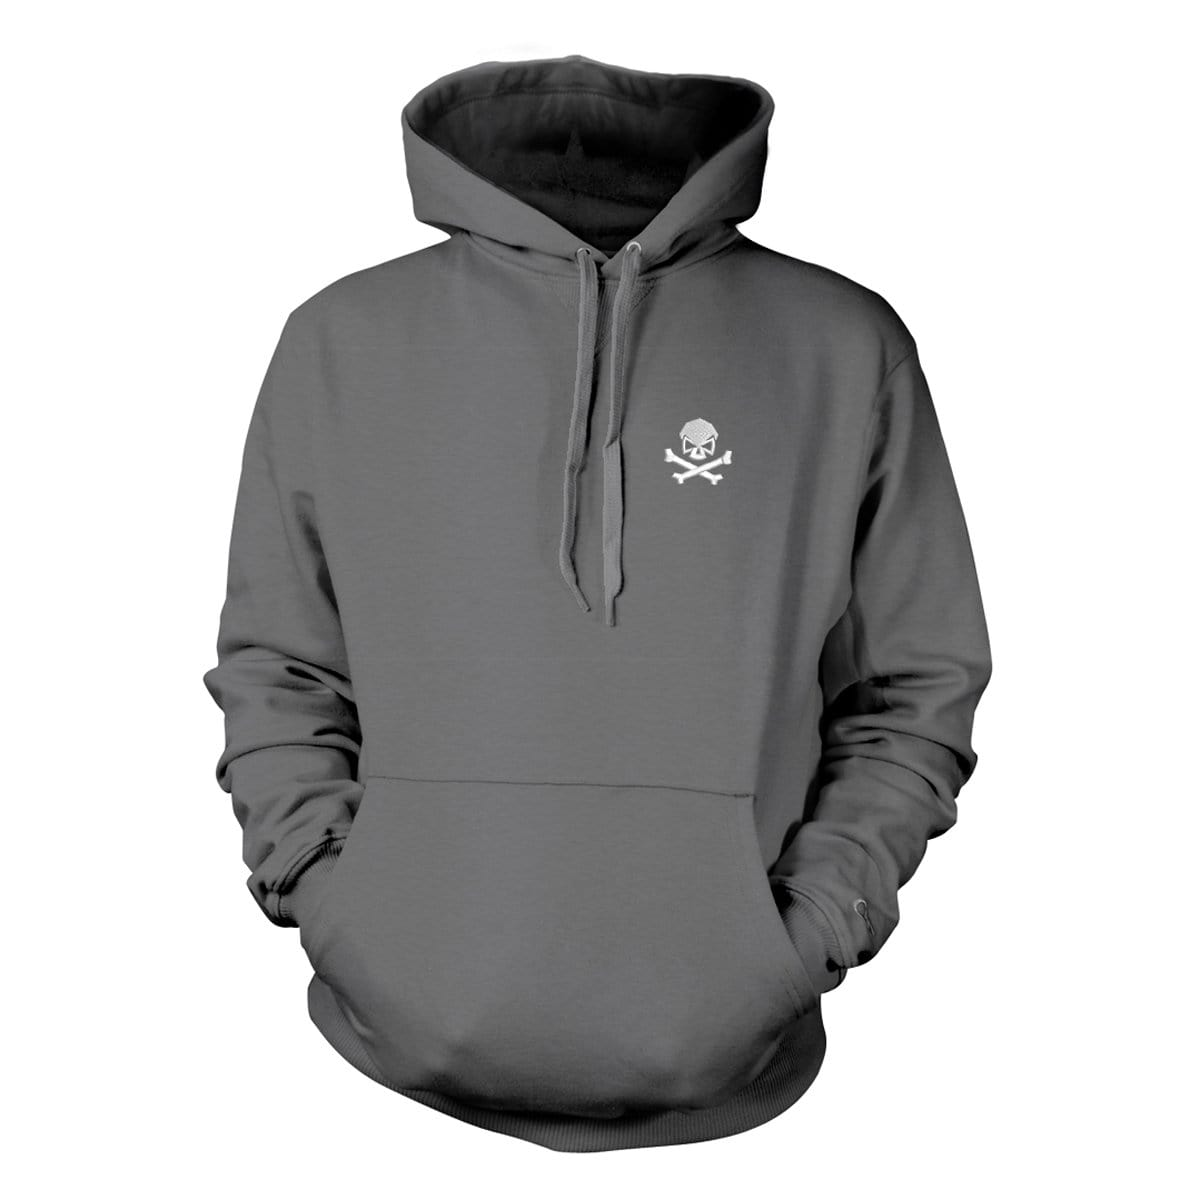 Skull & Bones Hoodie (Embroidered) - Grey/White - Hoodies - Pipe Hitters Union